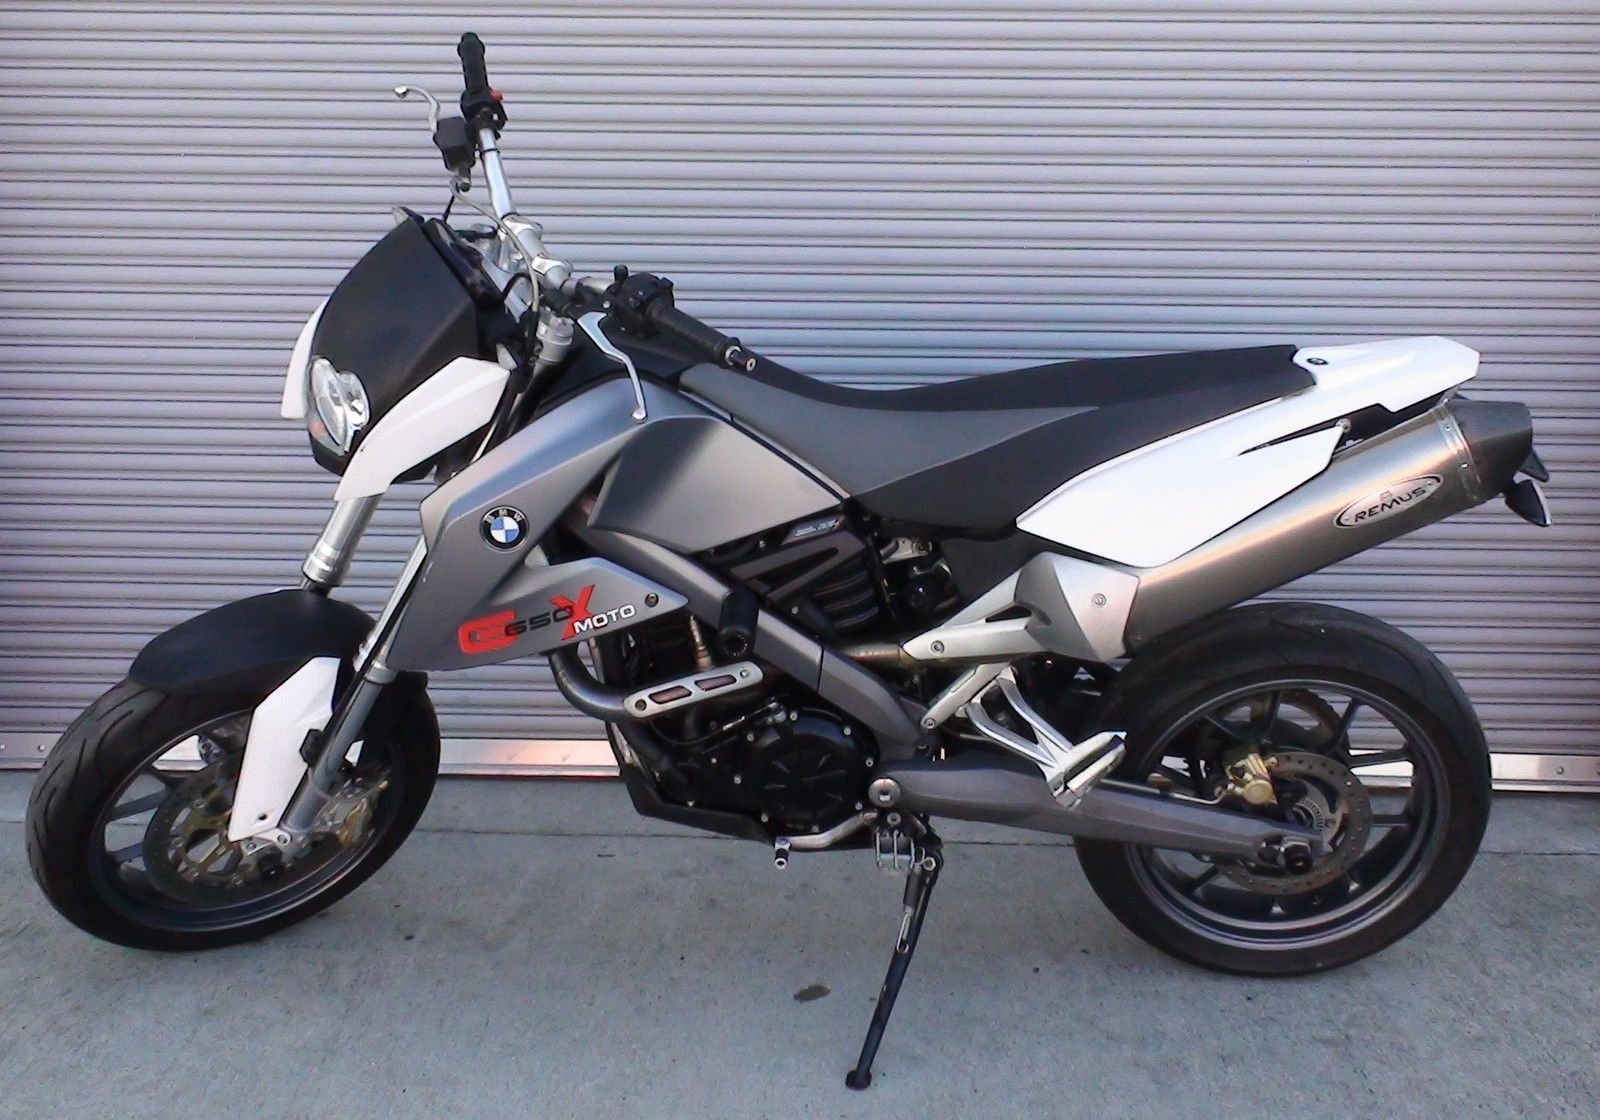 2007 bmw g650 x moto w remus ti slip on exhaust. Black Bedroom Furniture Sets. Home Design Ideas